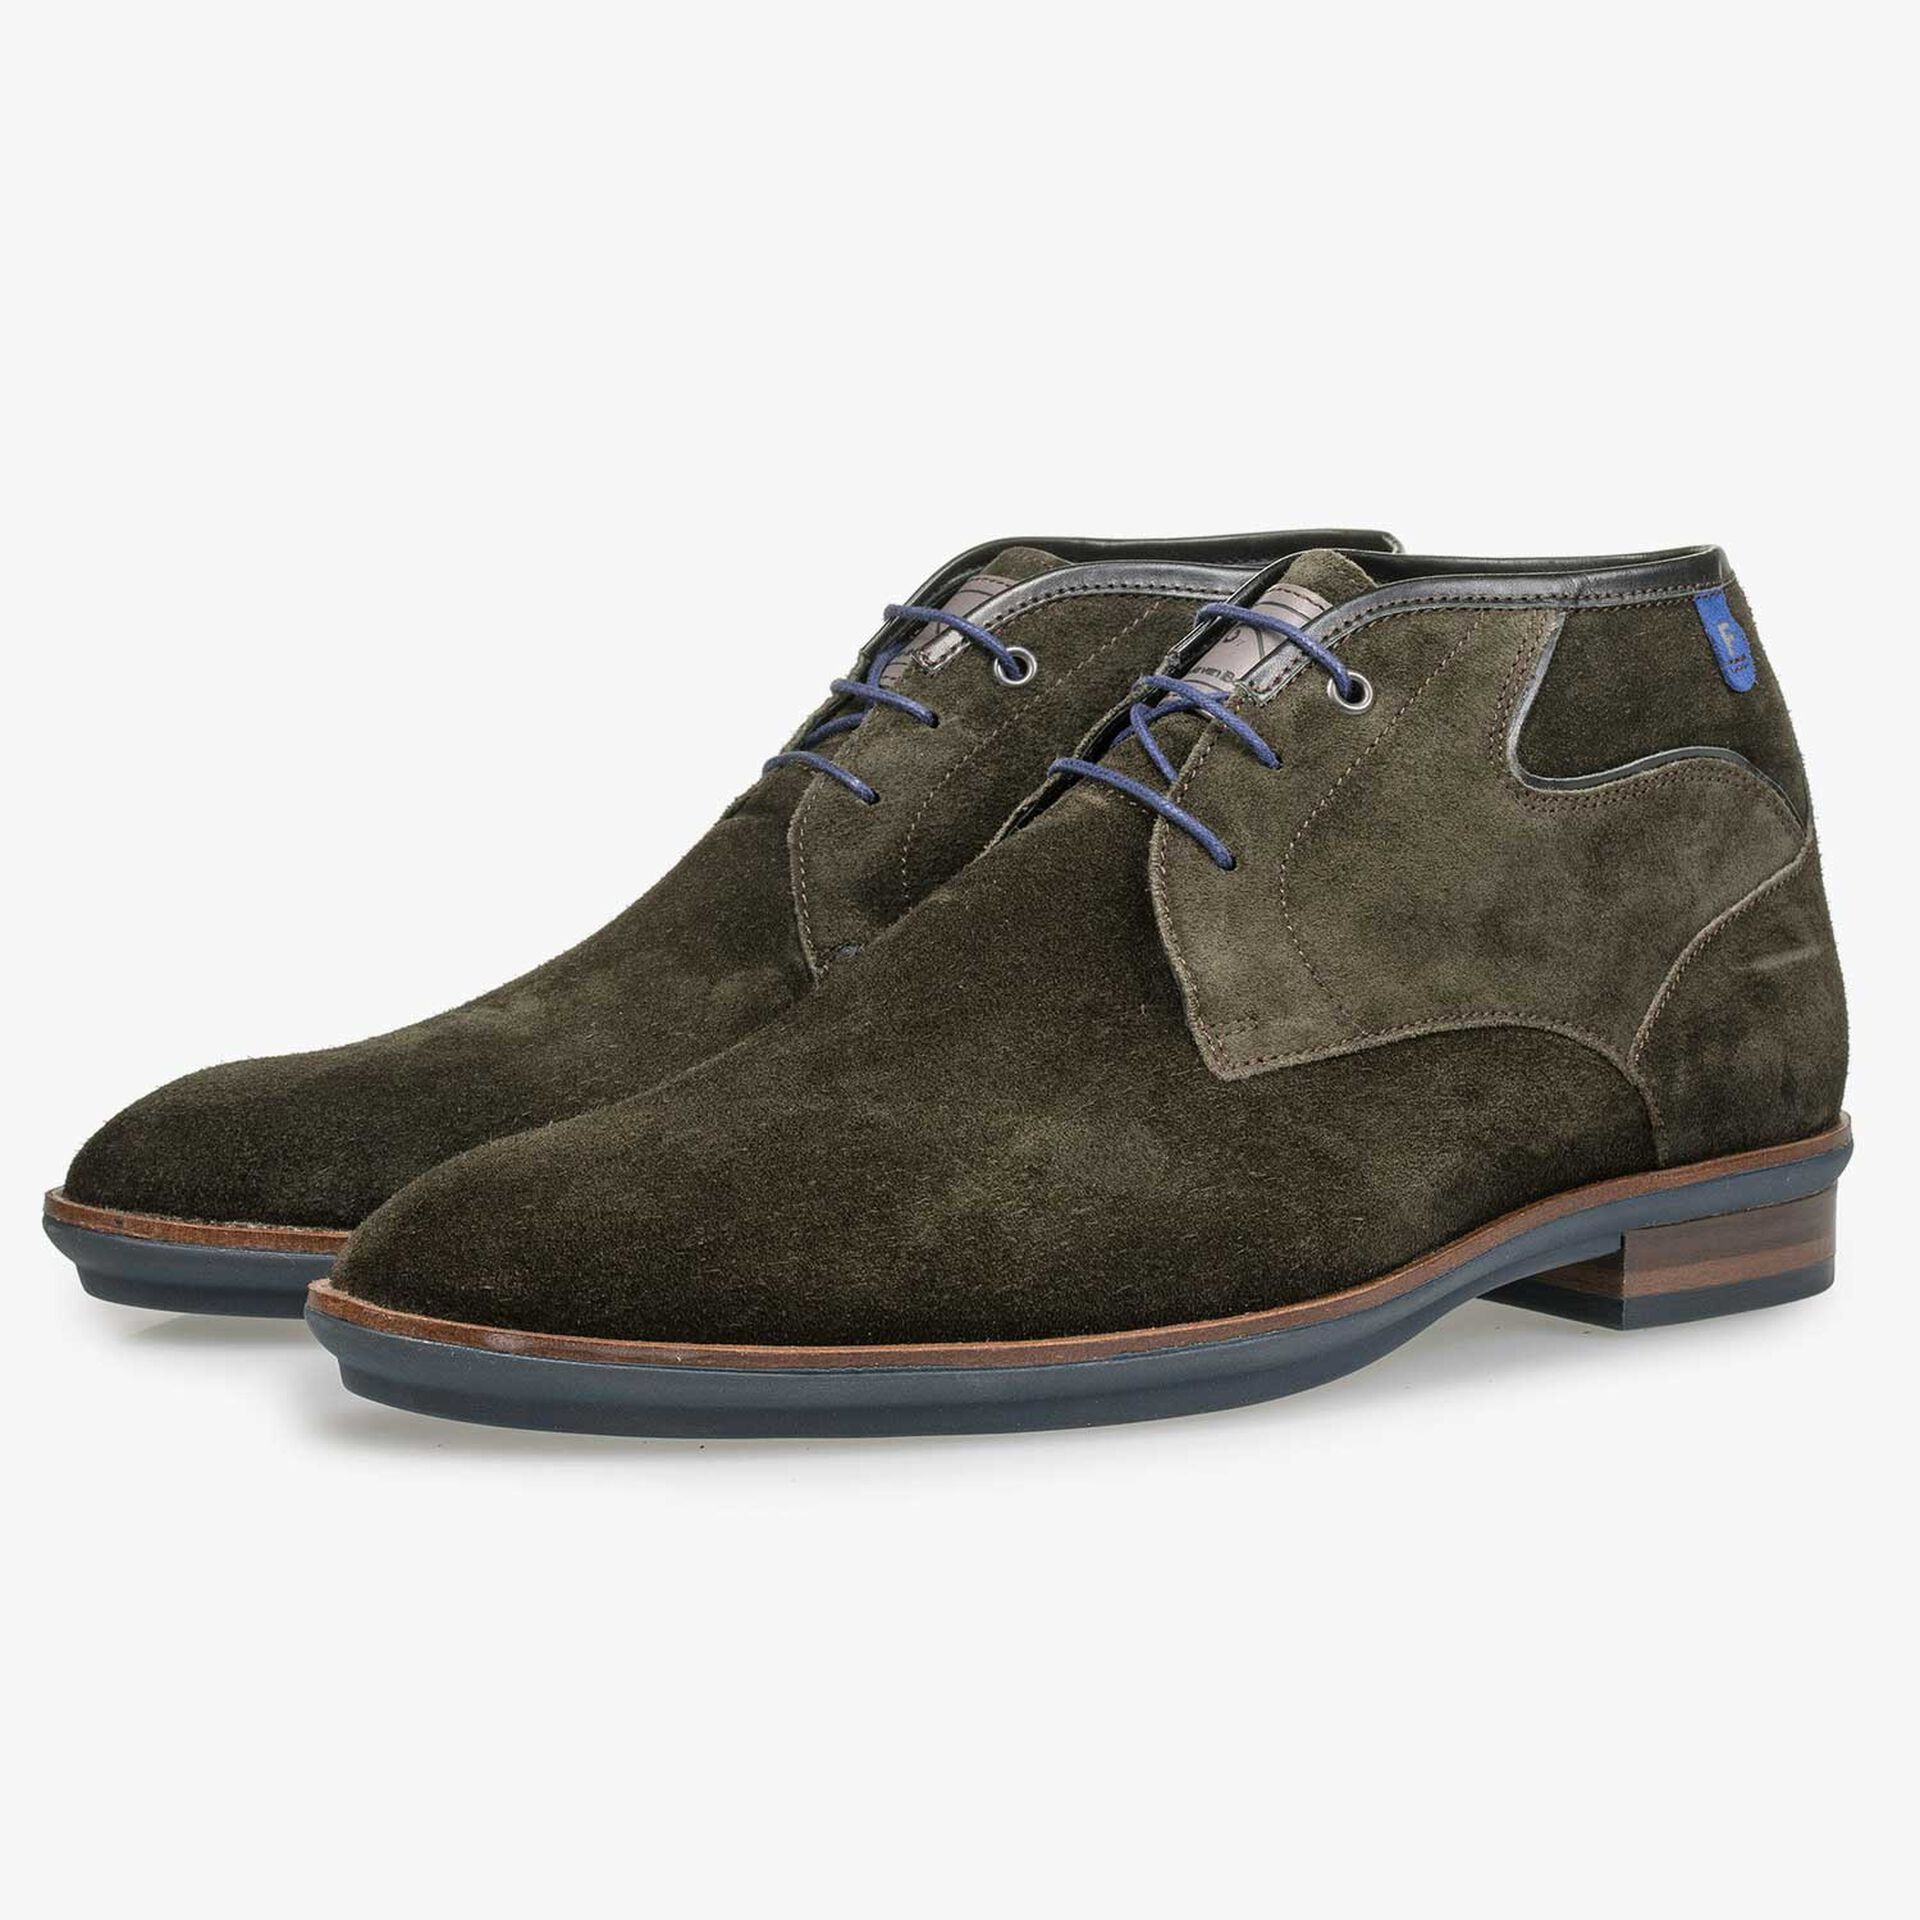 Olive green calf suede leather lace boot